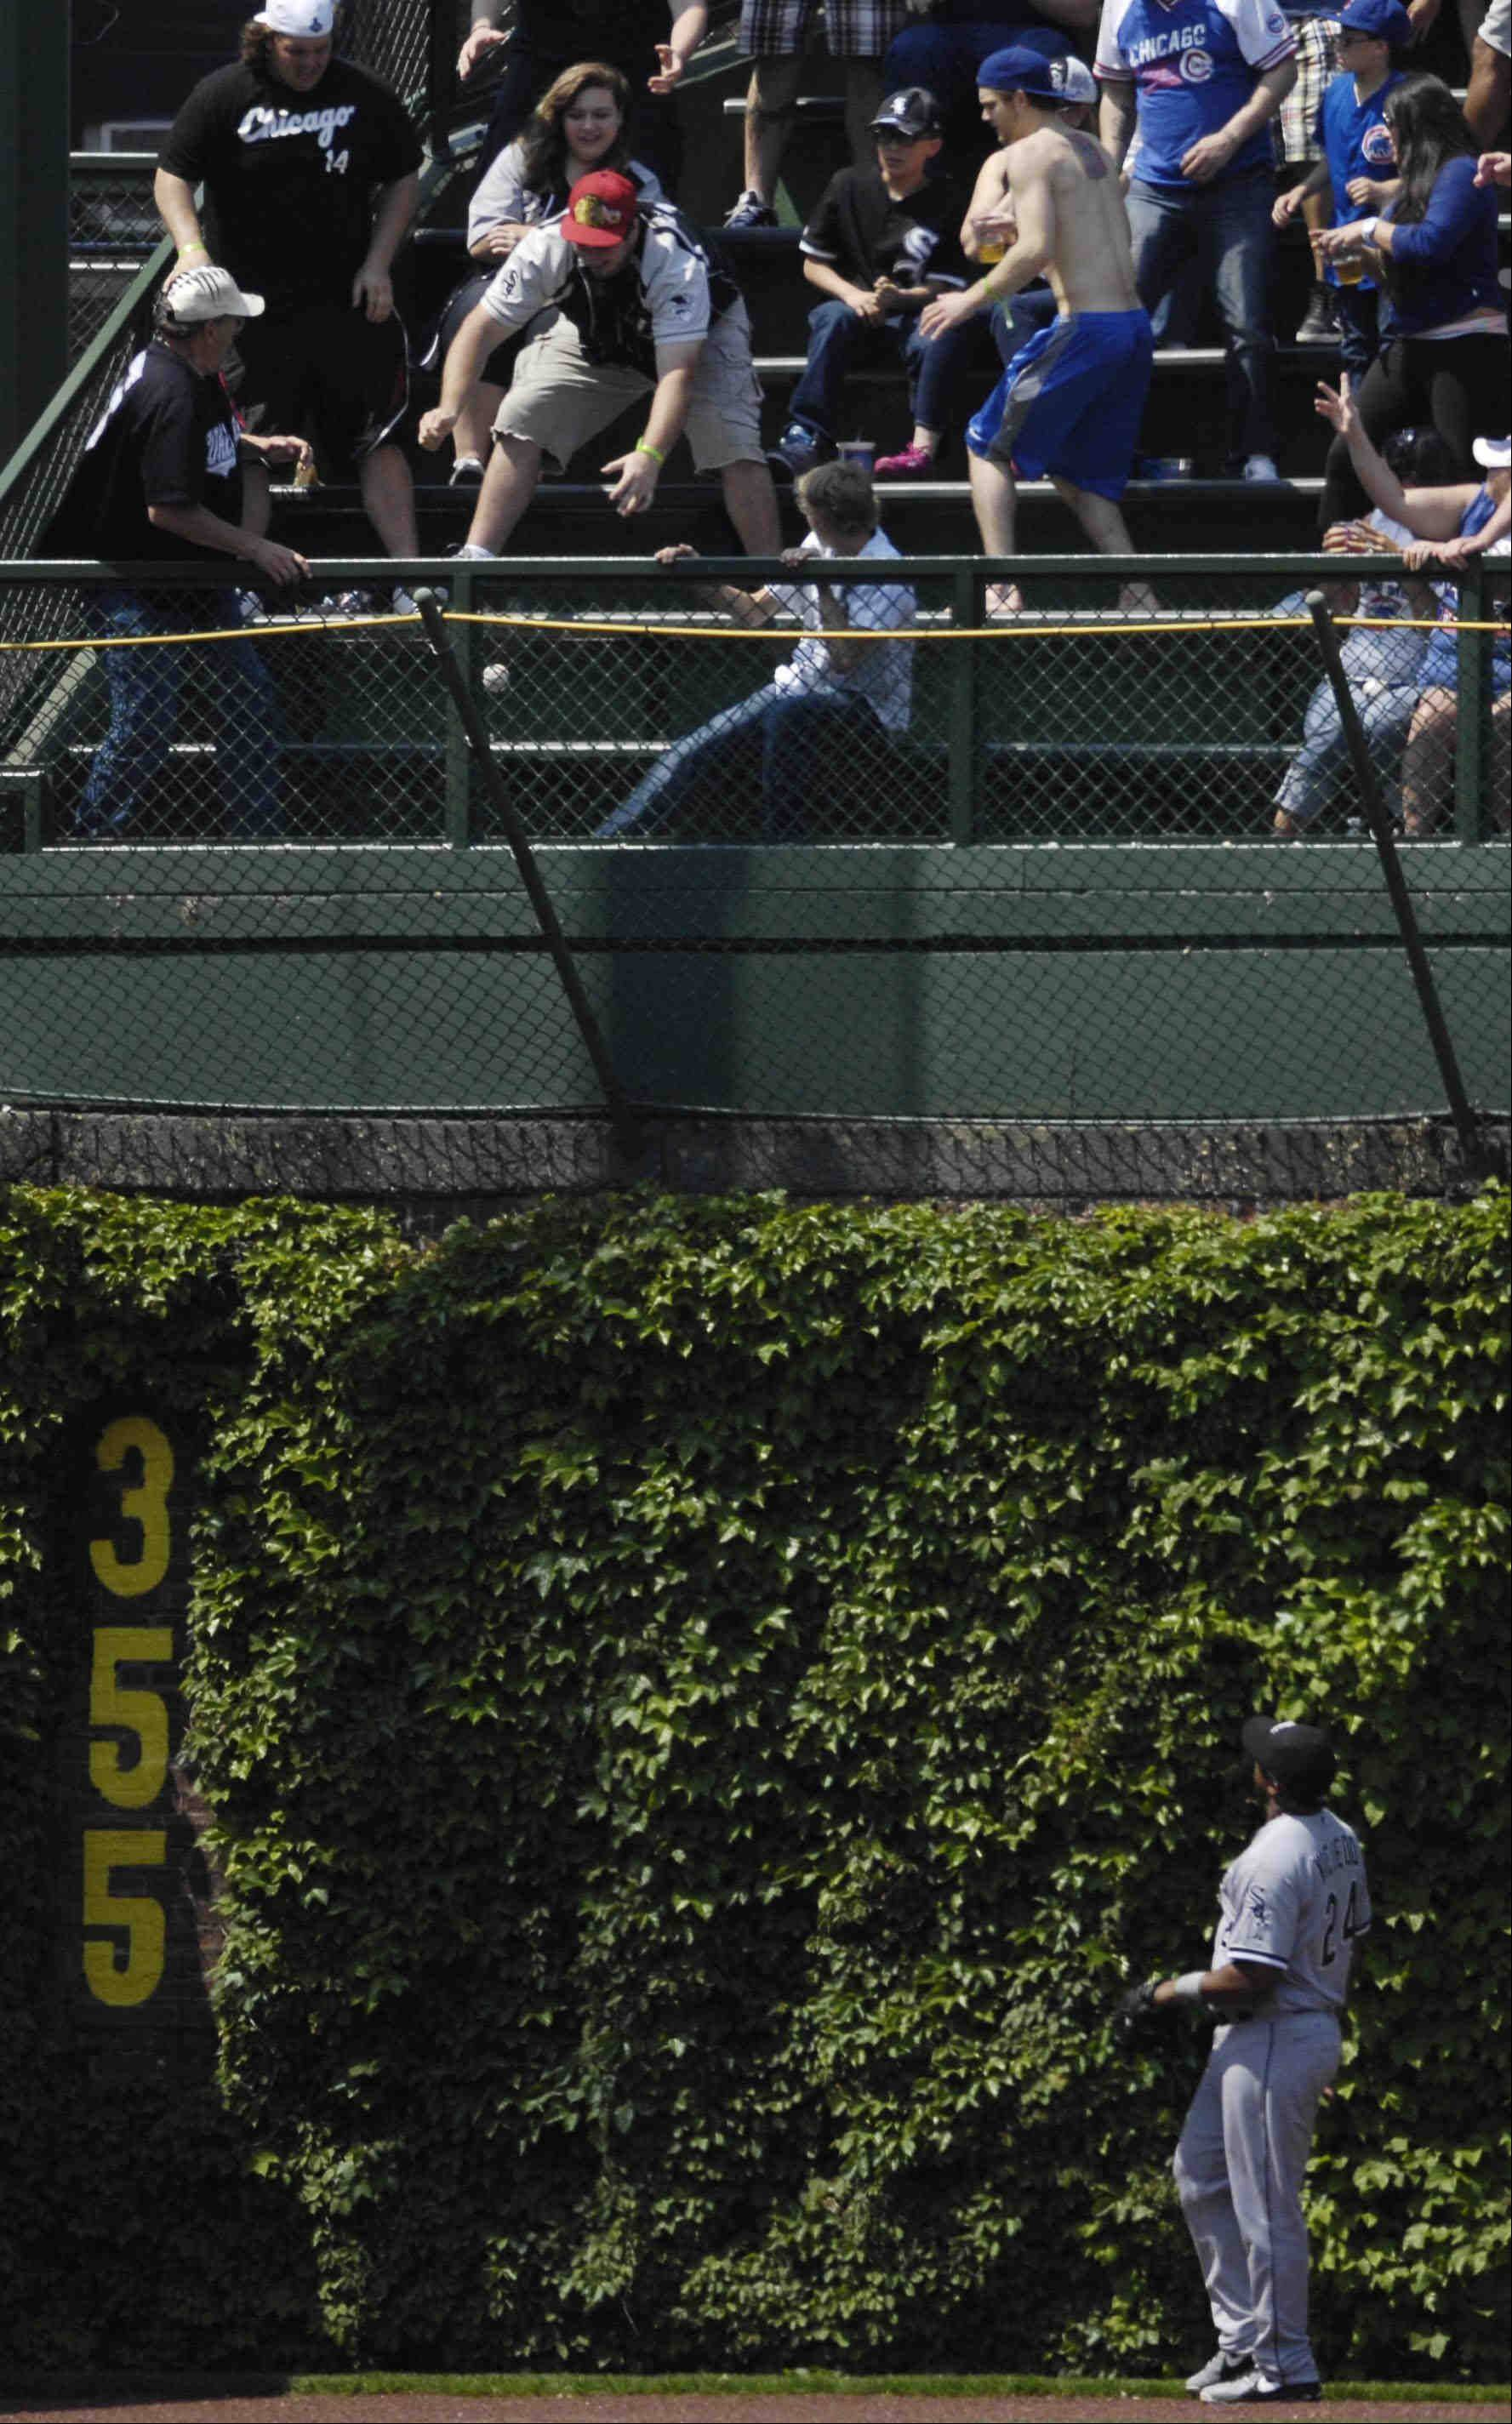 Left field bleacher fans scramble for Chicago Cubs catcher Dioner Navarro's second home run of the day.